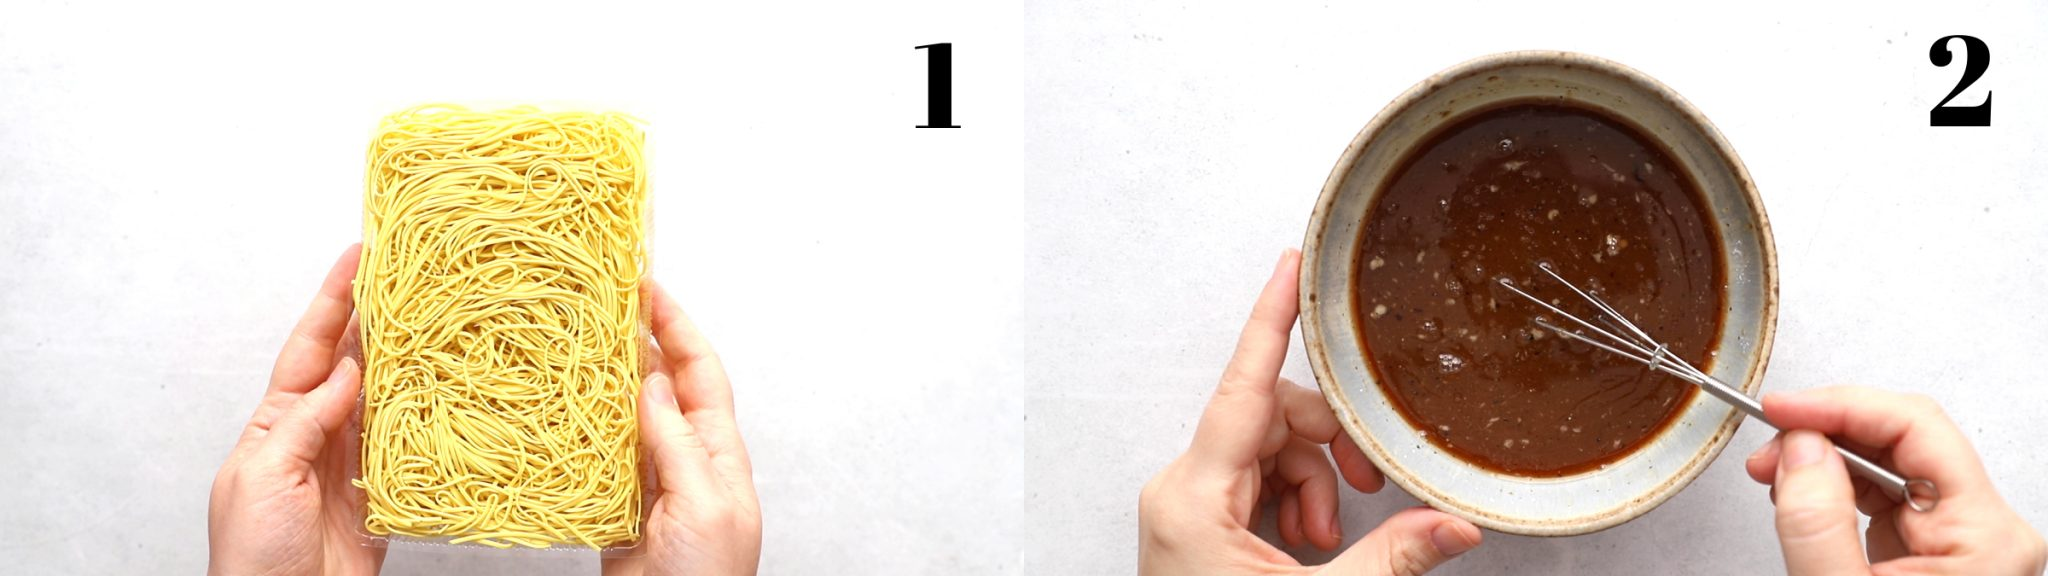 """2 stitched images: left image labeled """"1"""" is hands holding up uncooked chow mein noodles. Right image: labeled """"2"""" is a bowl with hands whisking brown liquid"""